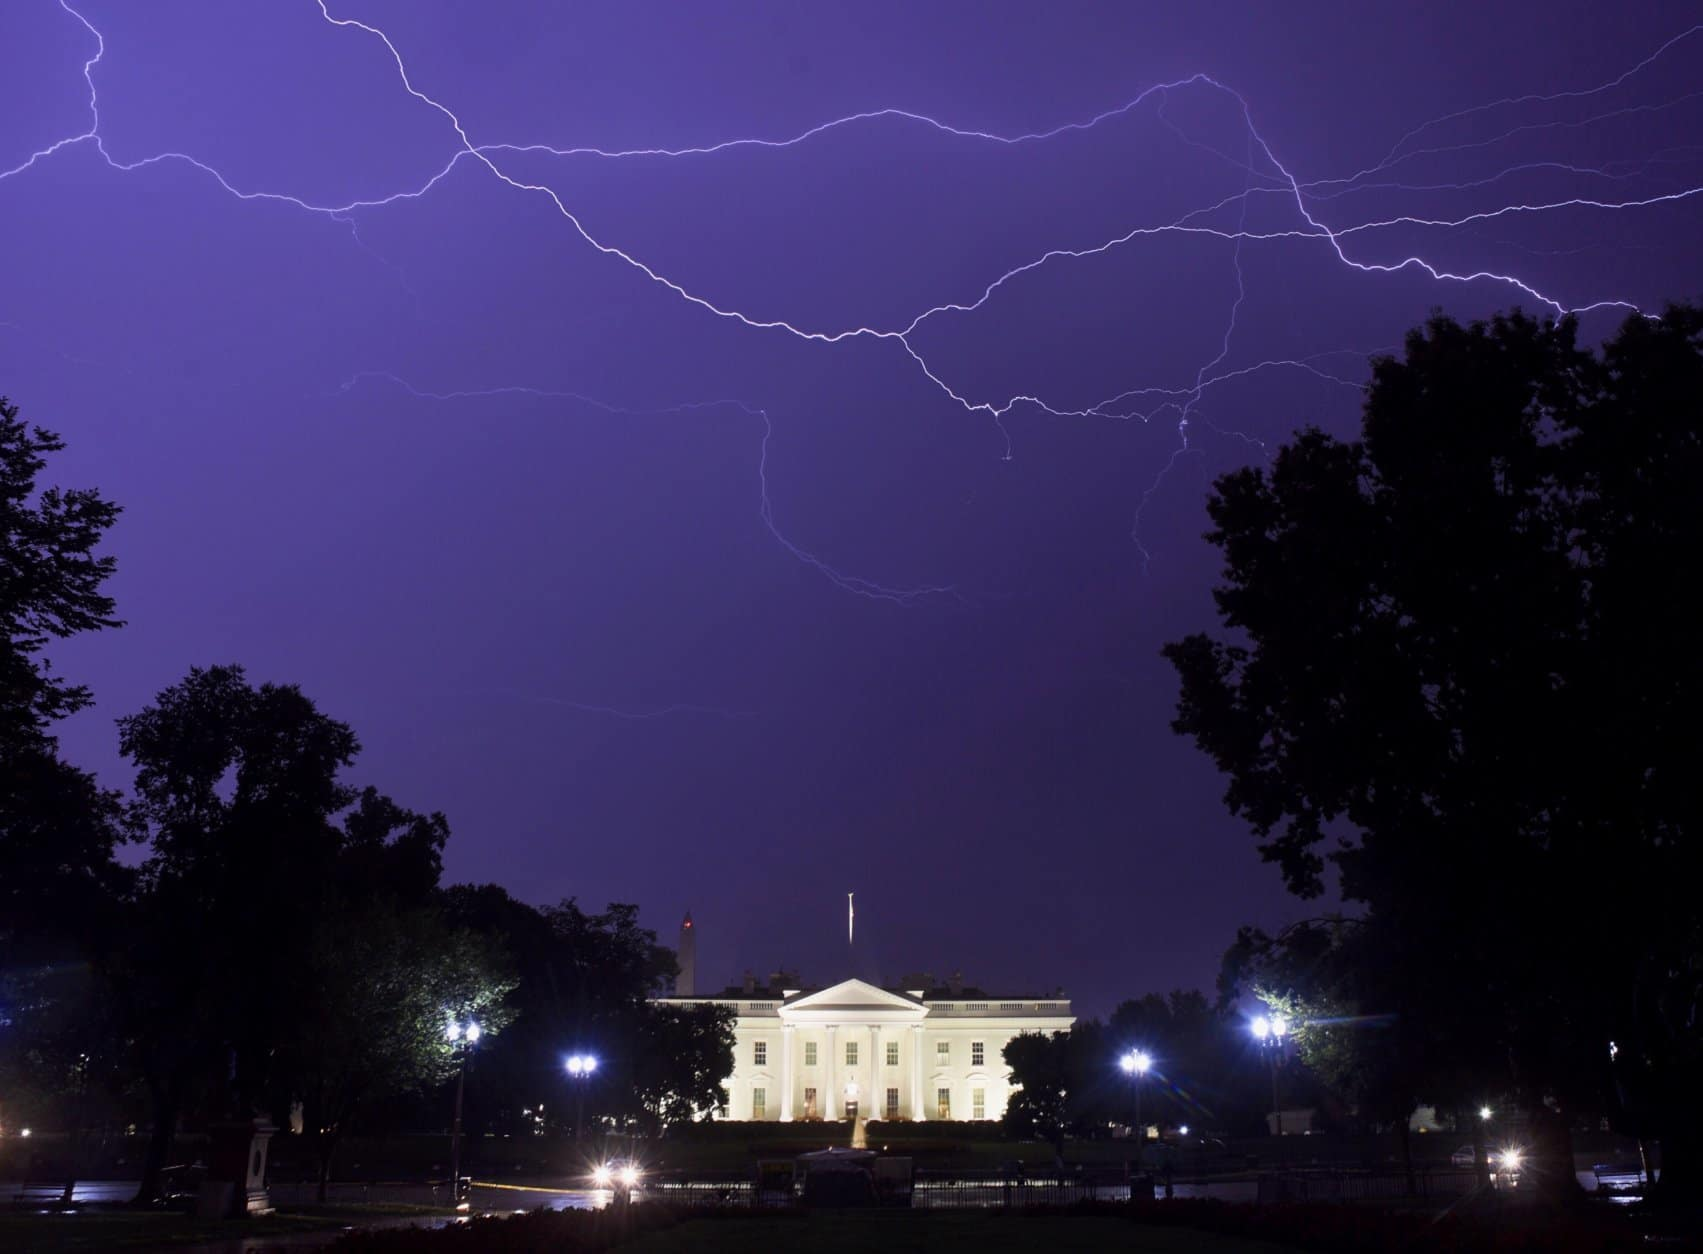 Spider lightning streaks across the sky above the White House on Sept. 7, 2018. The drenching storms unloaded 2.89 inches of rain on the District in just a few hours, making that Friday one of the wettest days of the what would eventually become wettest year ever. (WTOP/Dave Dildine)